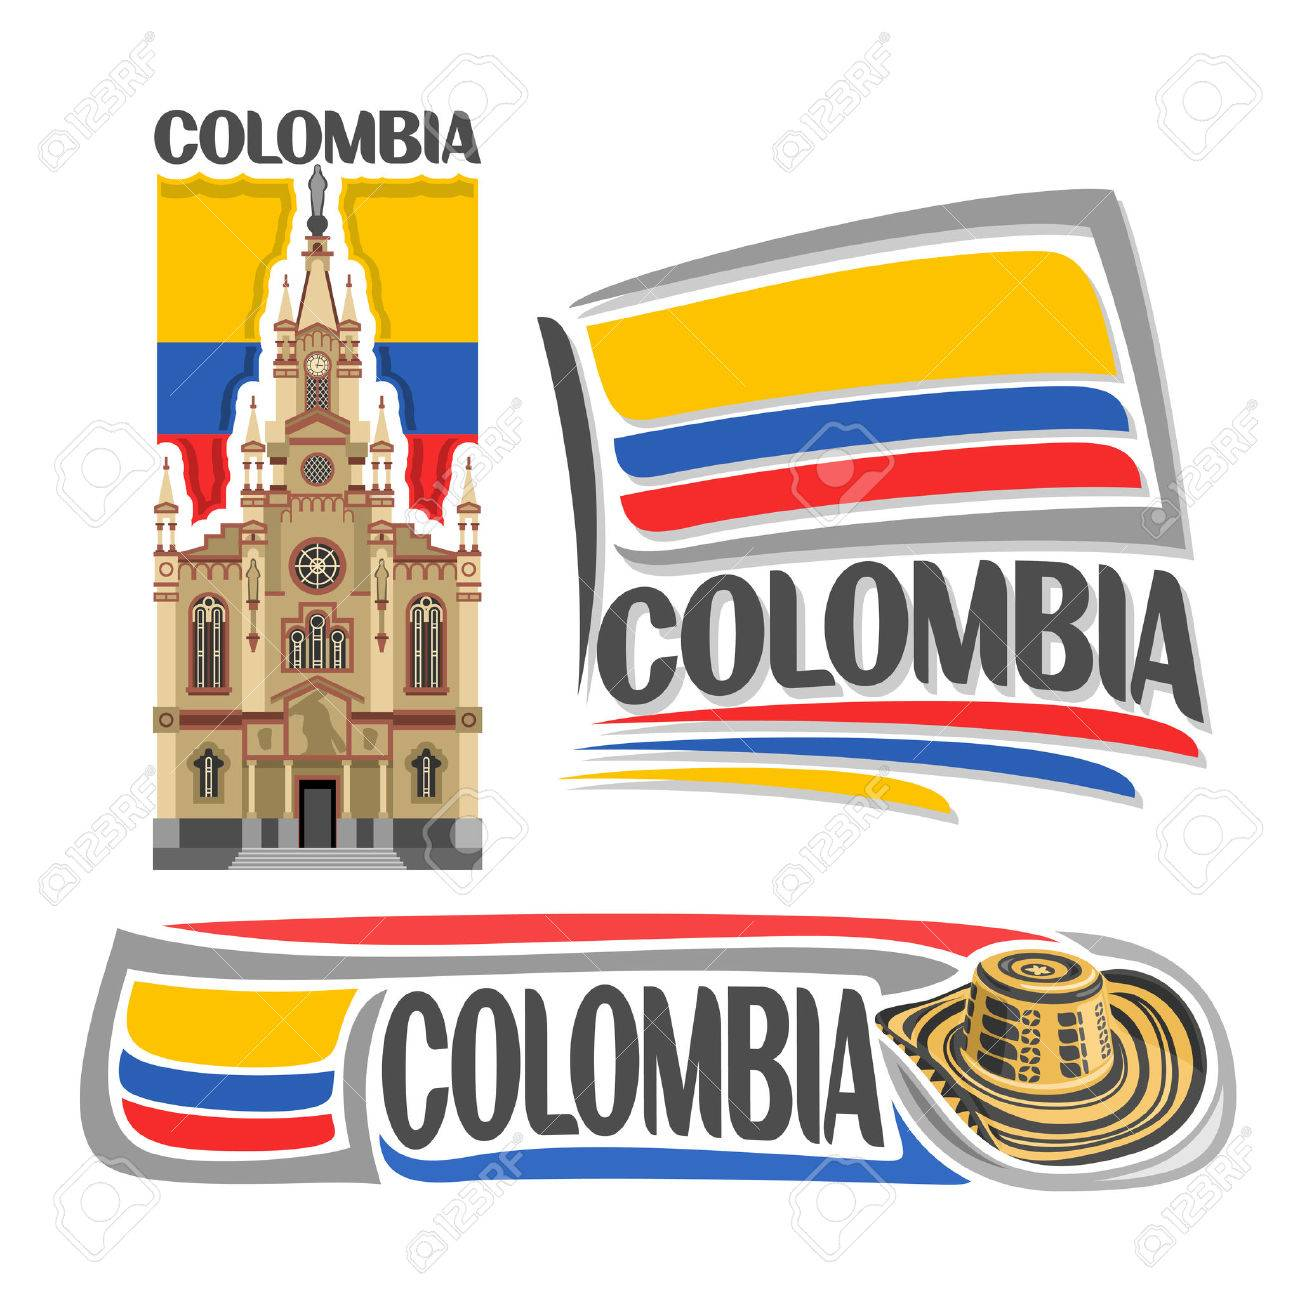 Colombia People Stock Illustrations – 786 Colombia People Stock  Illustrations, Vectors & Clipart - Dreamstime